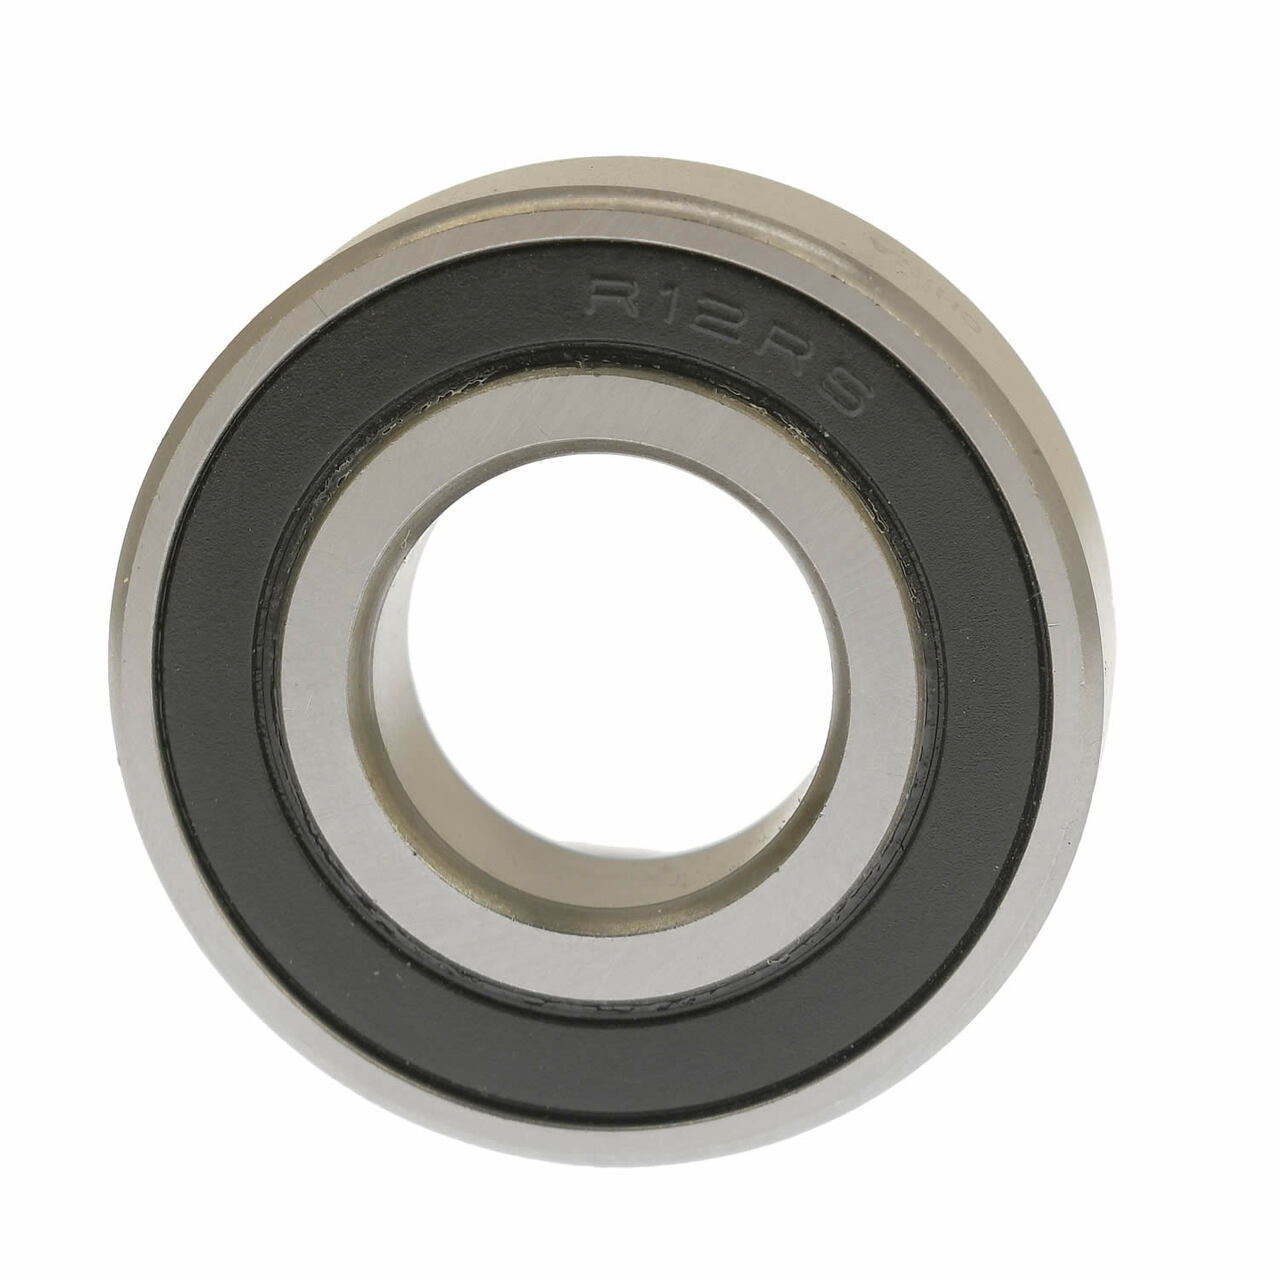 "3/4"" ID Precision Ball Bearings- 1 5/8"" OD"